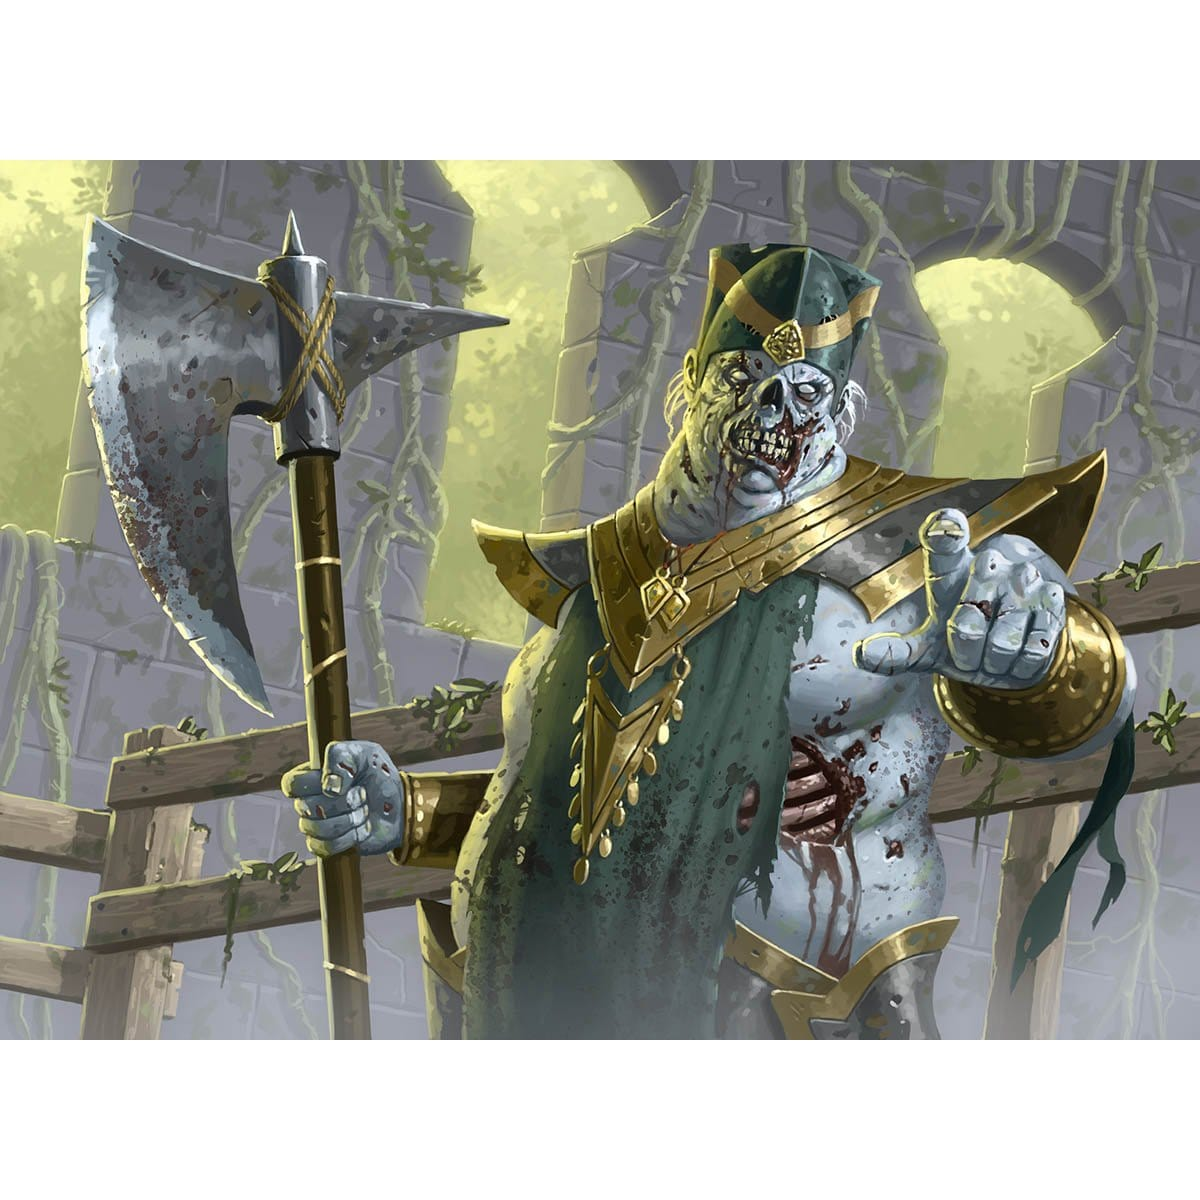 Risen Executioner Print - Print - Original Magic Art - Accessories for Magic the Gathering and other card games